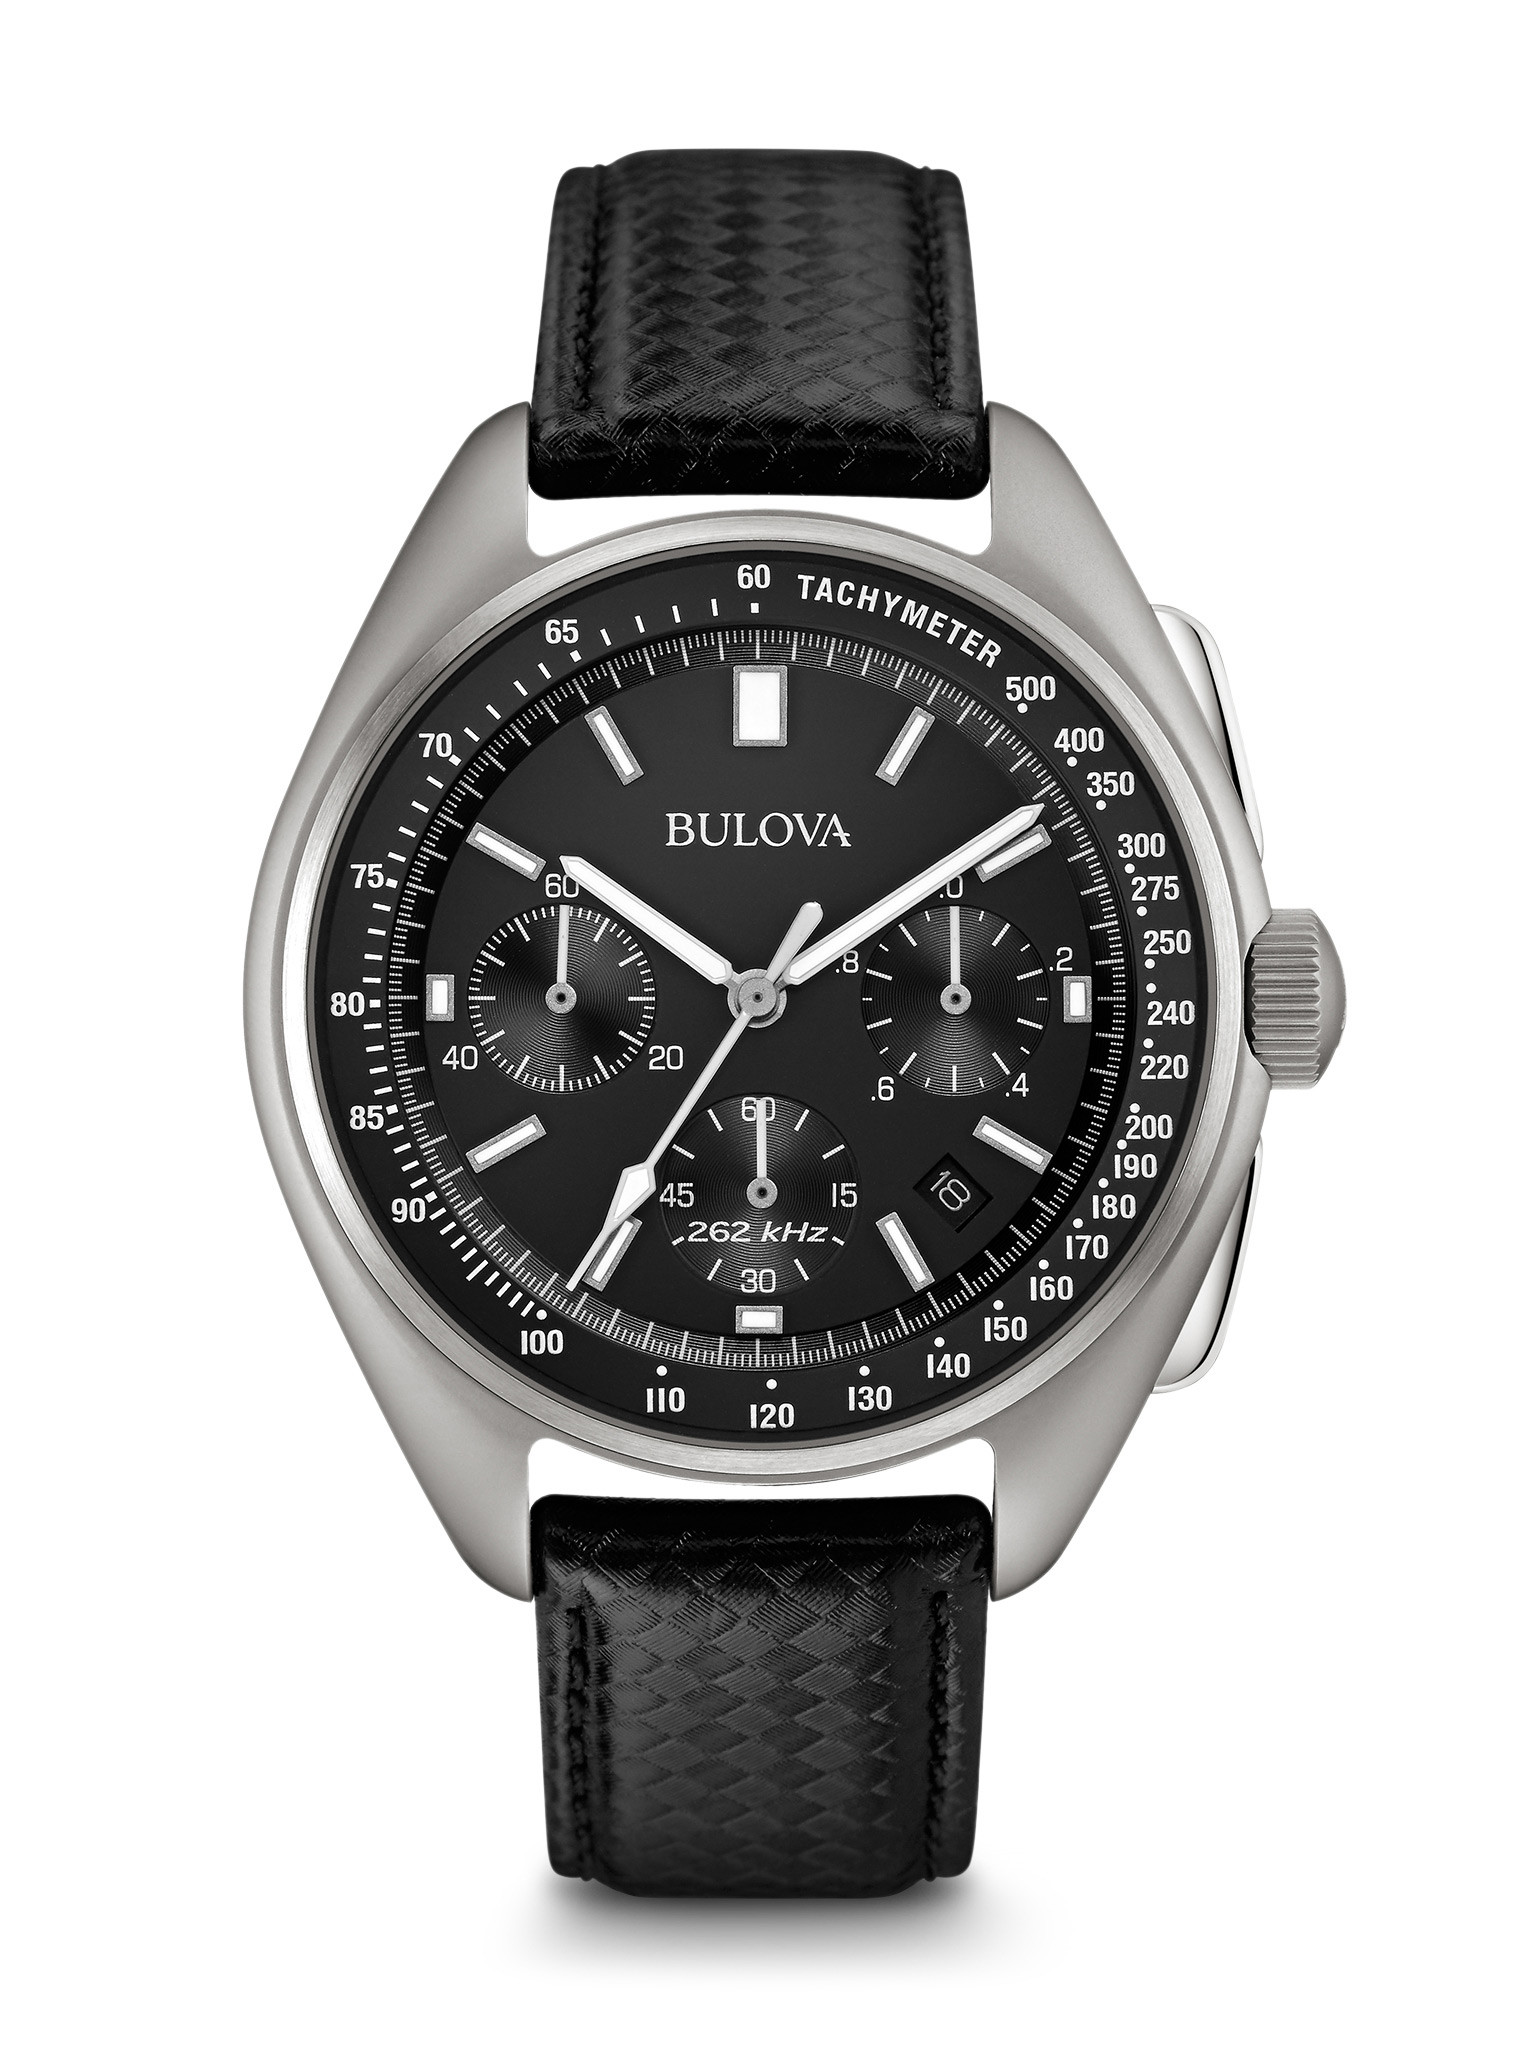 Bulova Watches Review Are They Good? The Watch Blog